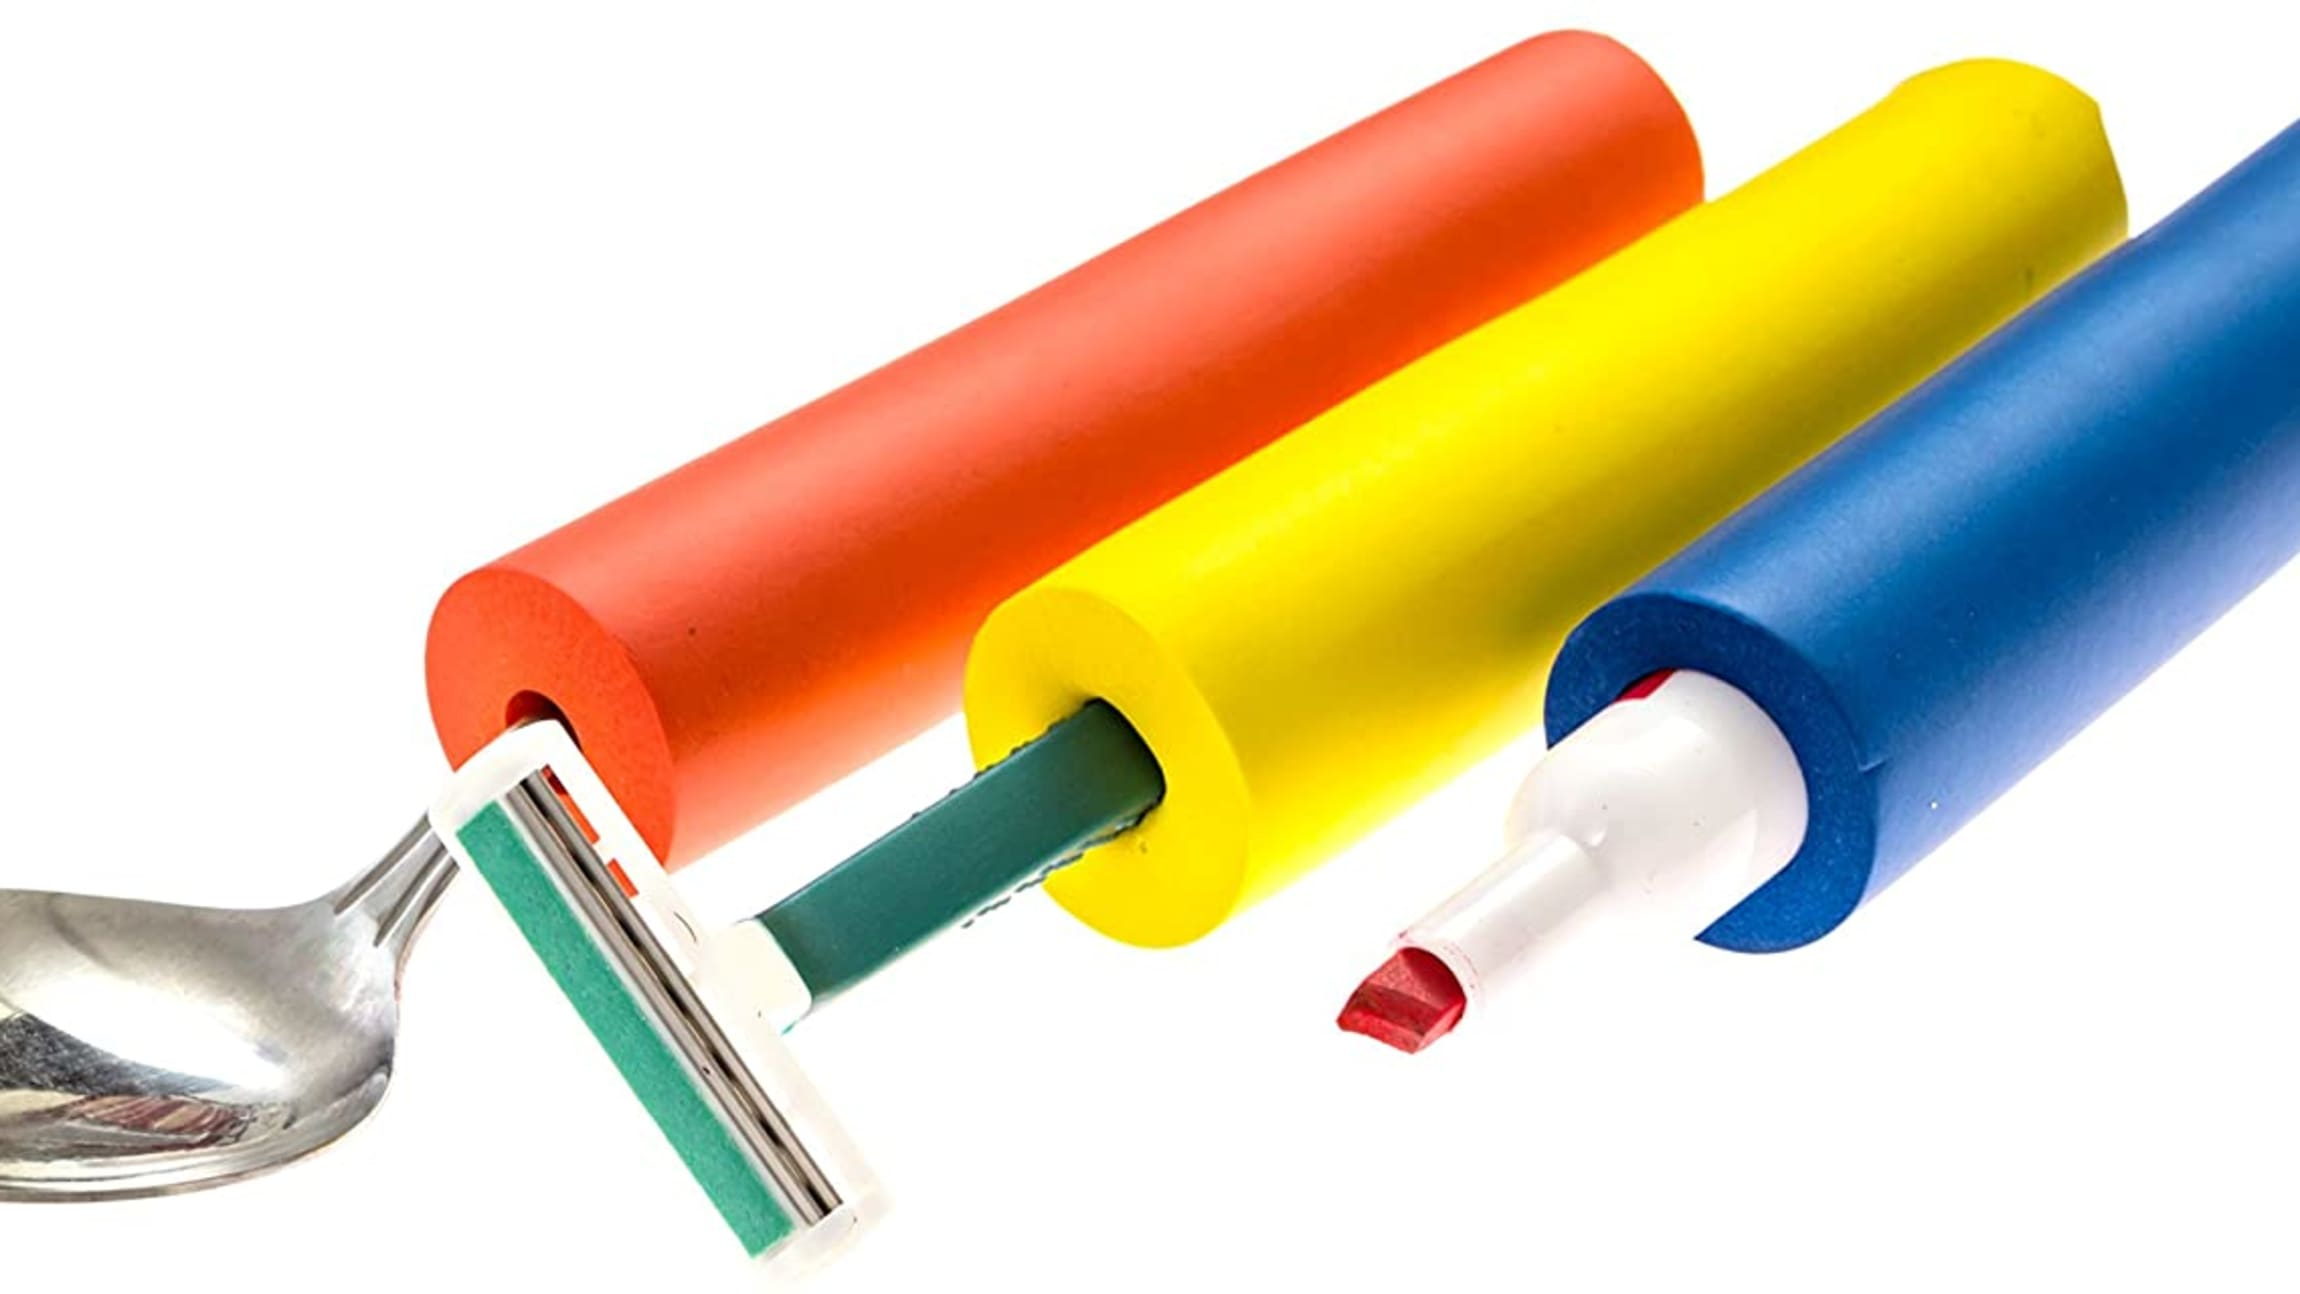 Picture showing different uses of foam tubing. Red tubing holding a spoon, yellow tubing holding a razor, and blue tubing holding dry erase marker.